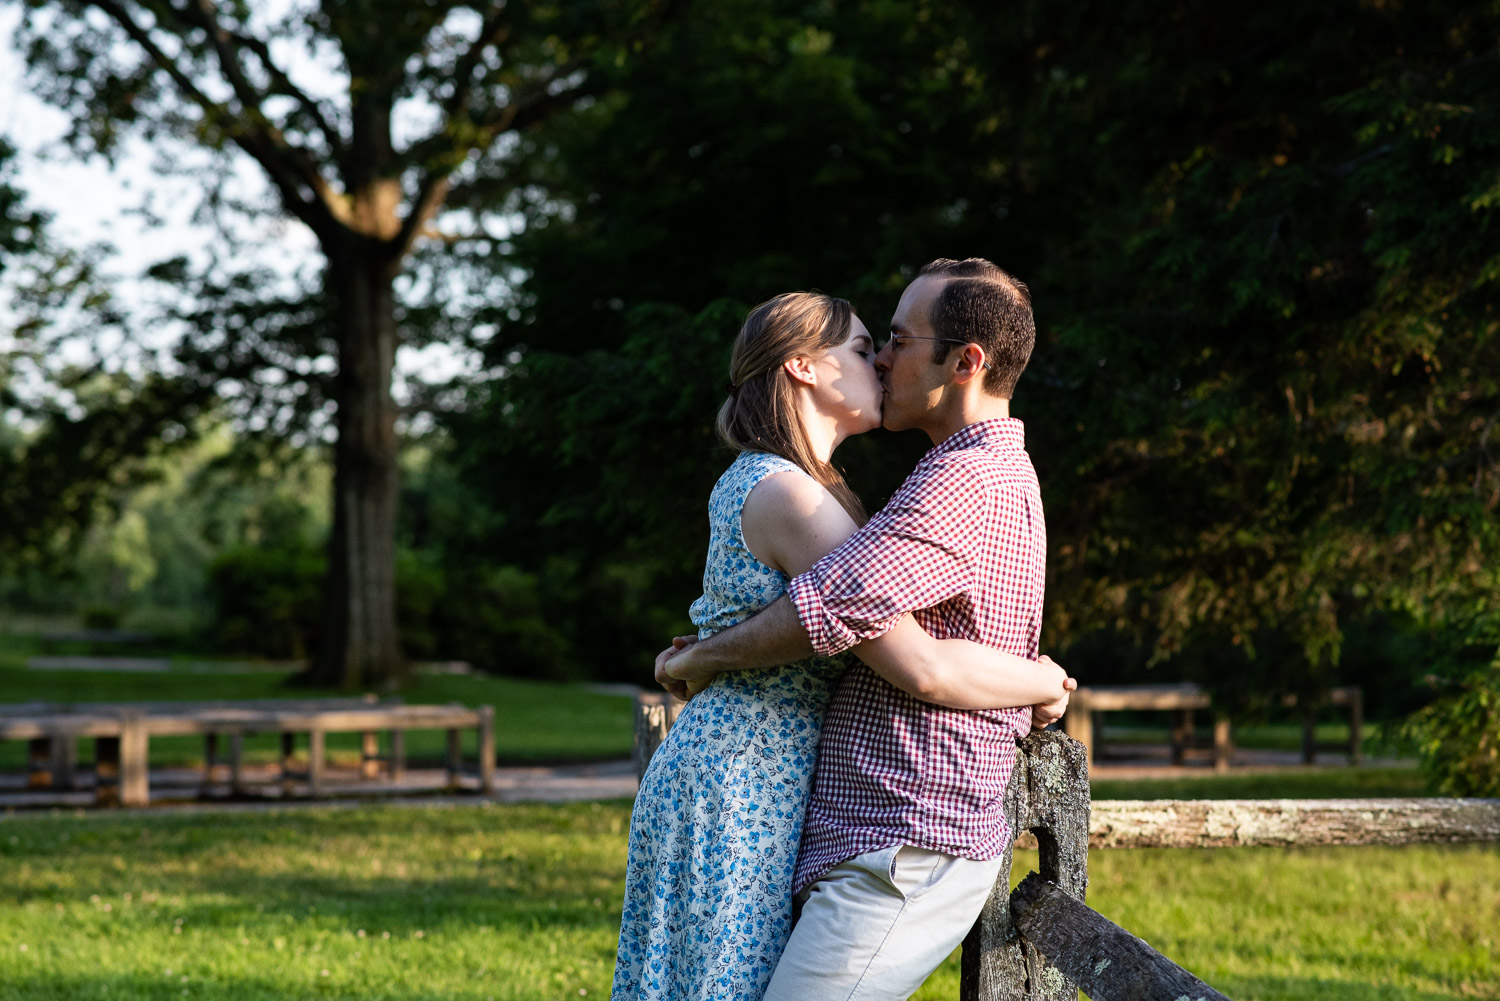 Heather and Chuck engagement at Old North Bridge, Concord, MA photographed by Kara Emily Krantz Photography.